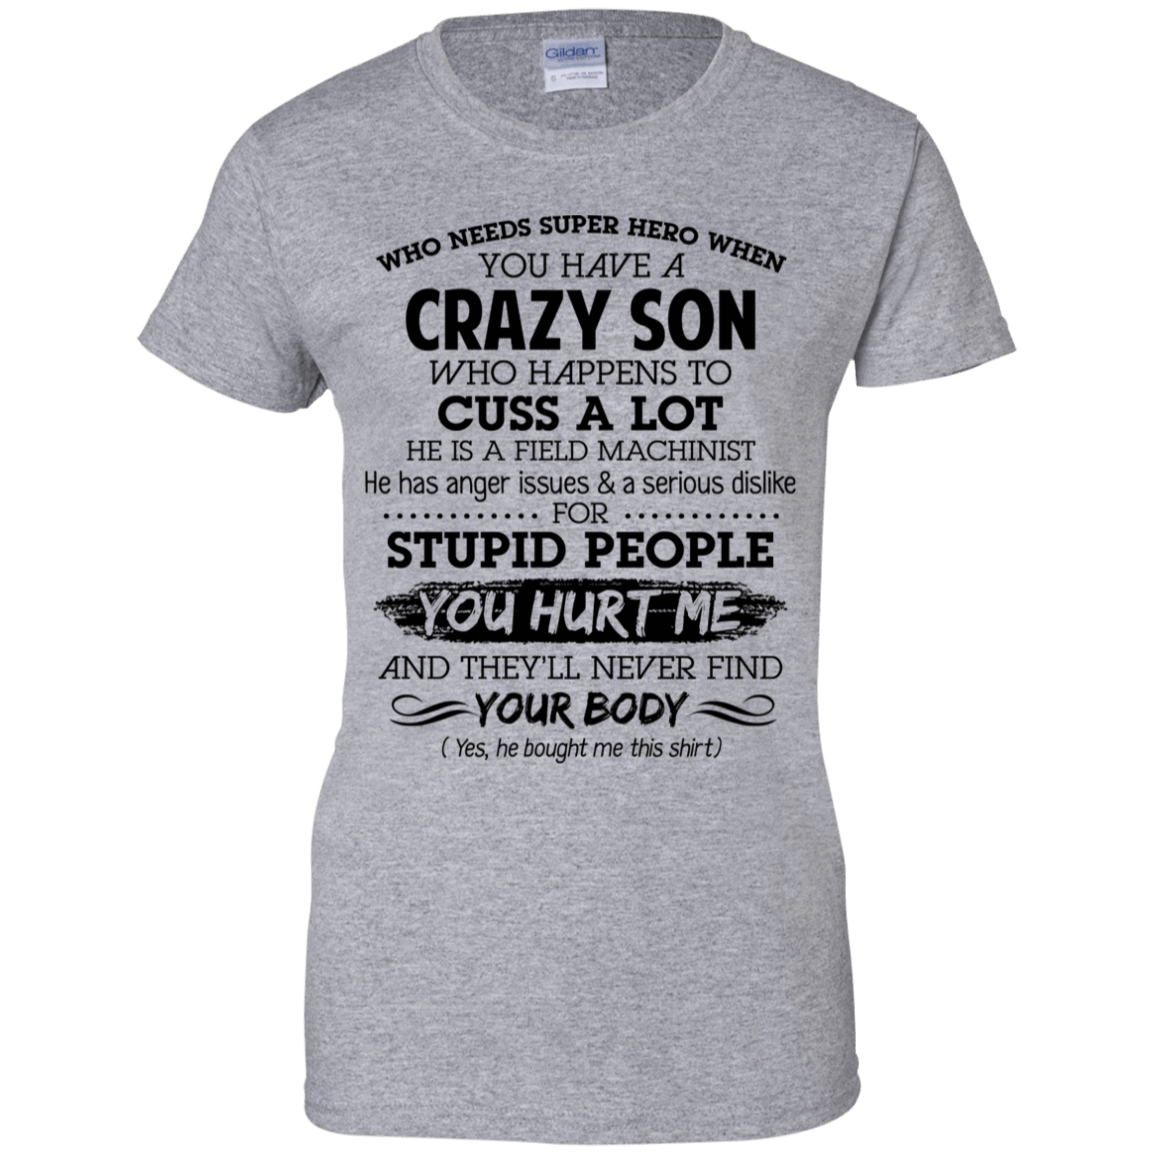 Have Crazy Son He Is A Field Machinist Mother's Day Gift 939-9265-73619451-44821 - Tee Ript